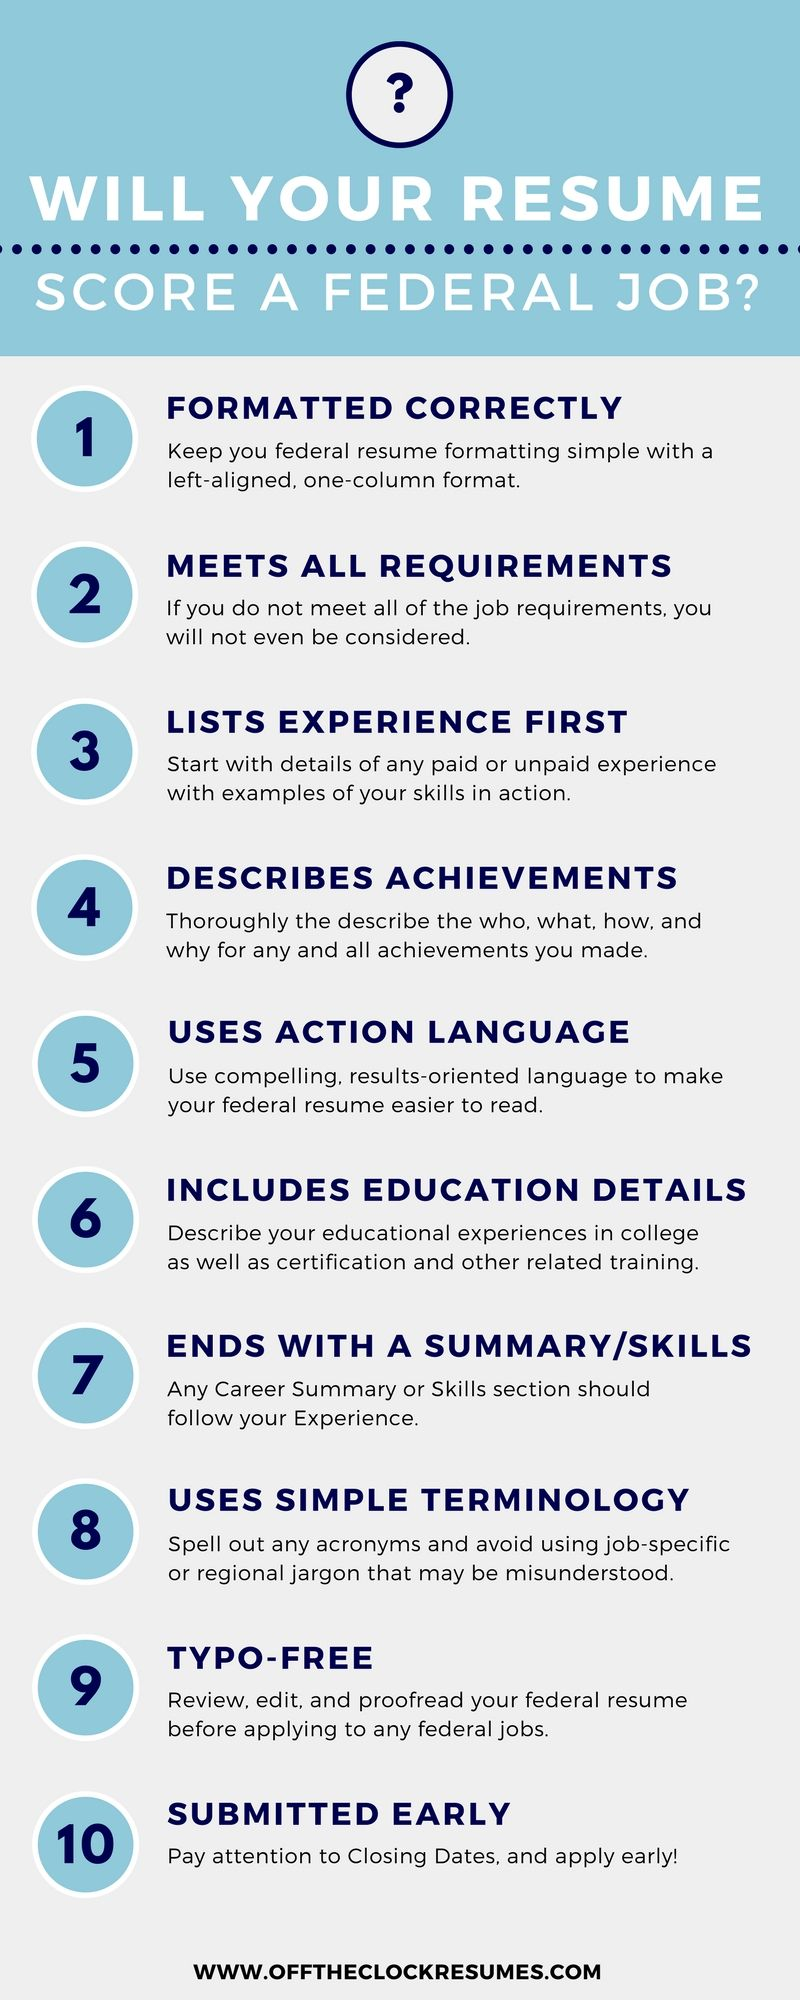 Will Your Resume Score A Federal Job? | Pinterest | Infographic